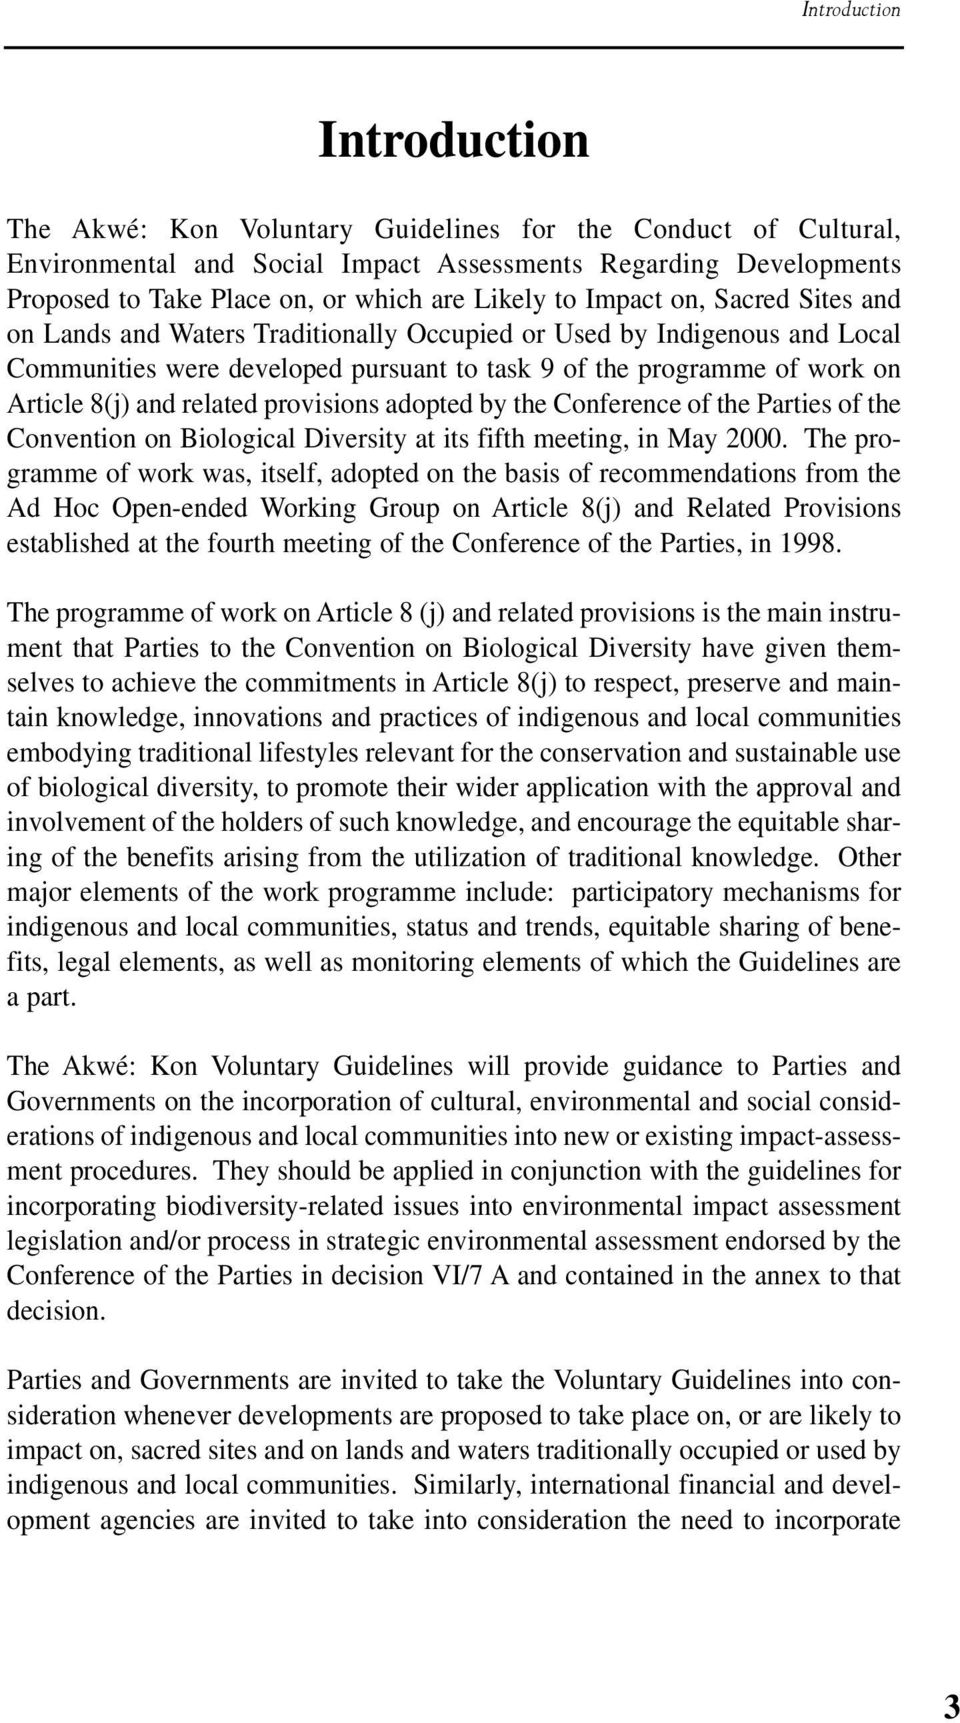 and related provisions adopted by the Conference of the Parties of the Convention on Biological Diversity at its fifth meeting, in May 2000.